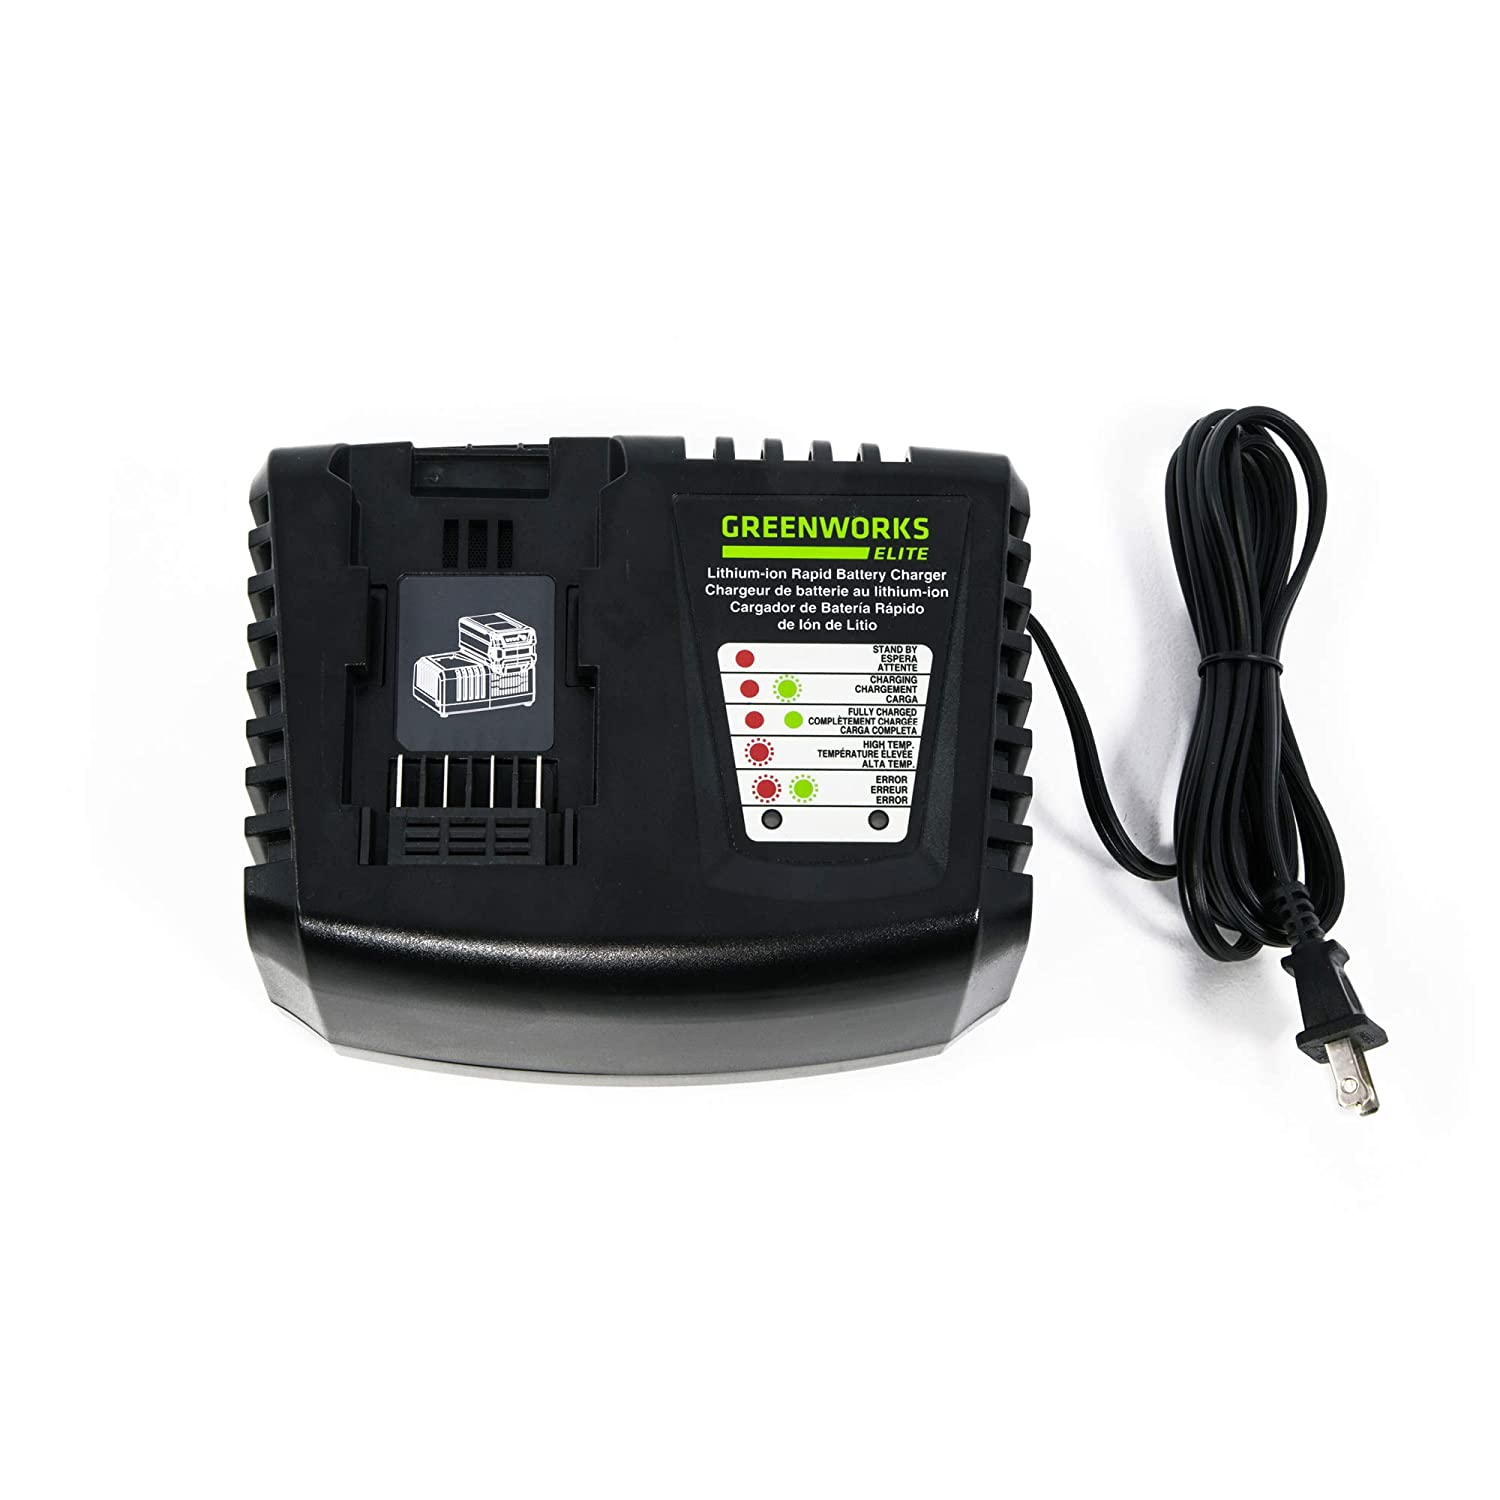 Greenworks 40V Rapid Charger, C-400